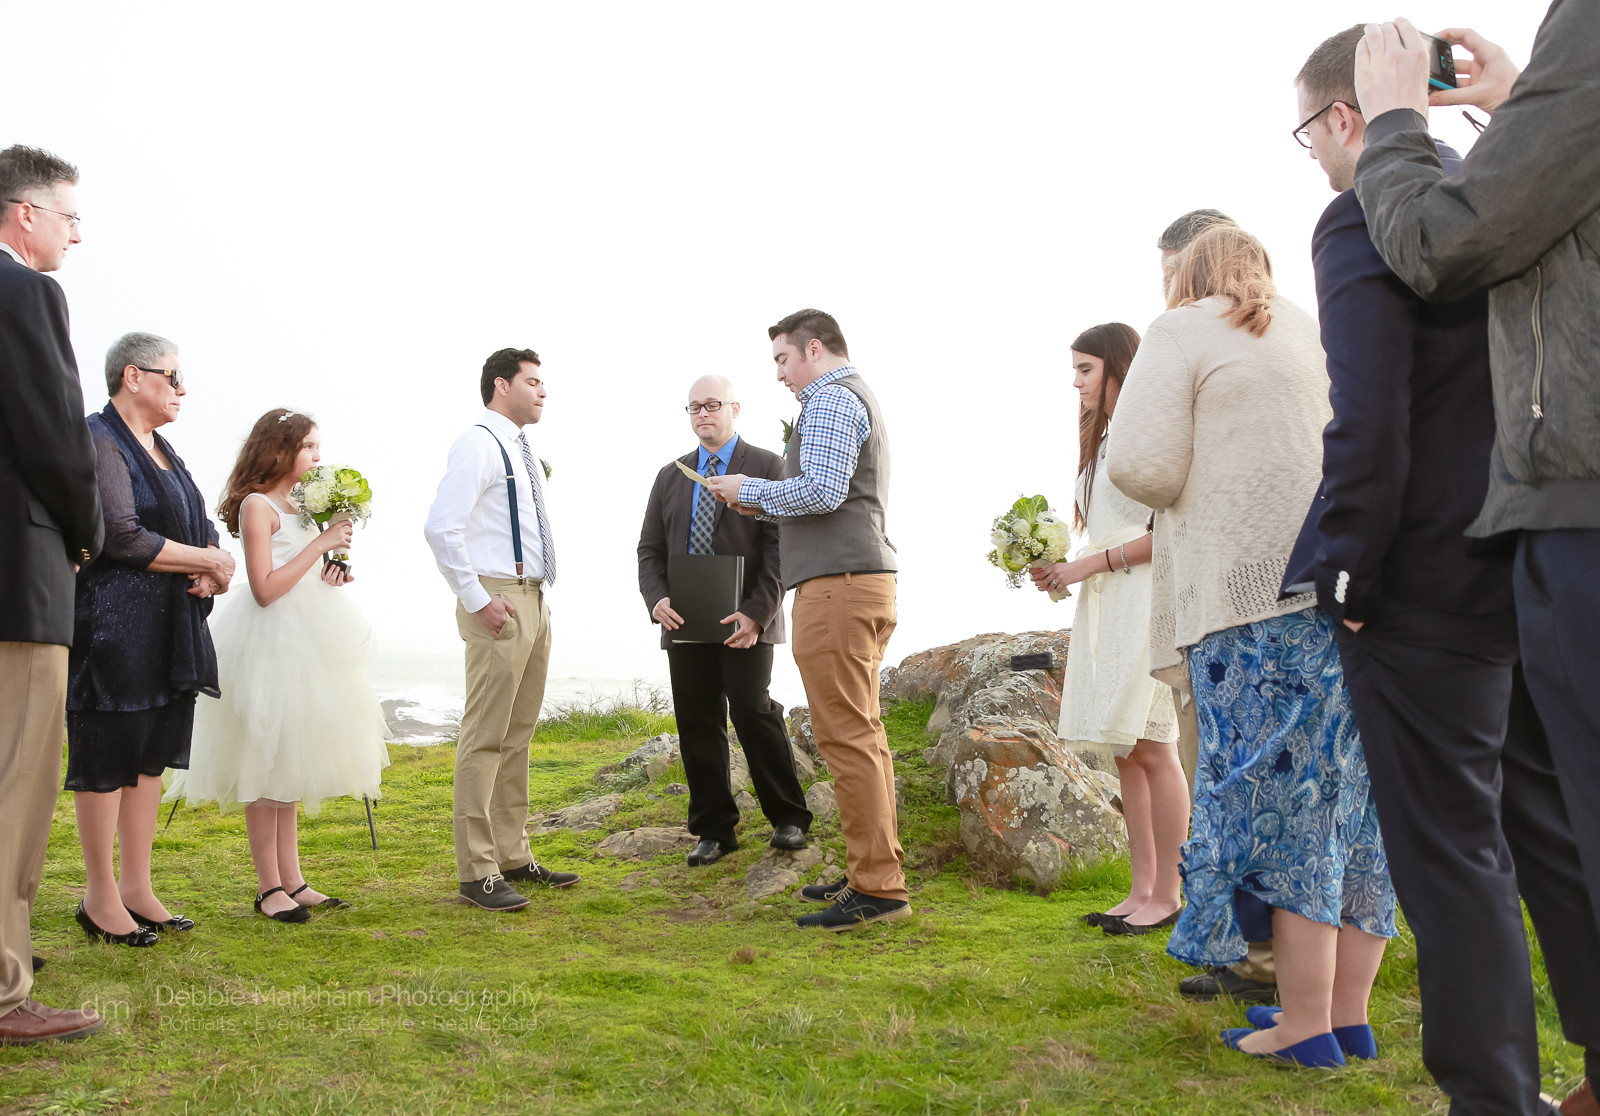 A+R_Gay Wedding_Portraits_Married_Cambria_Robin's_California_Coast__Photographer-7